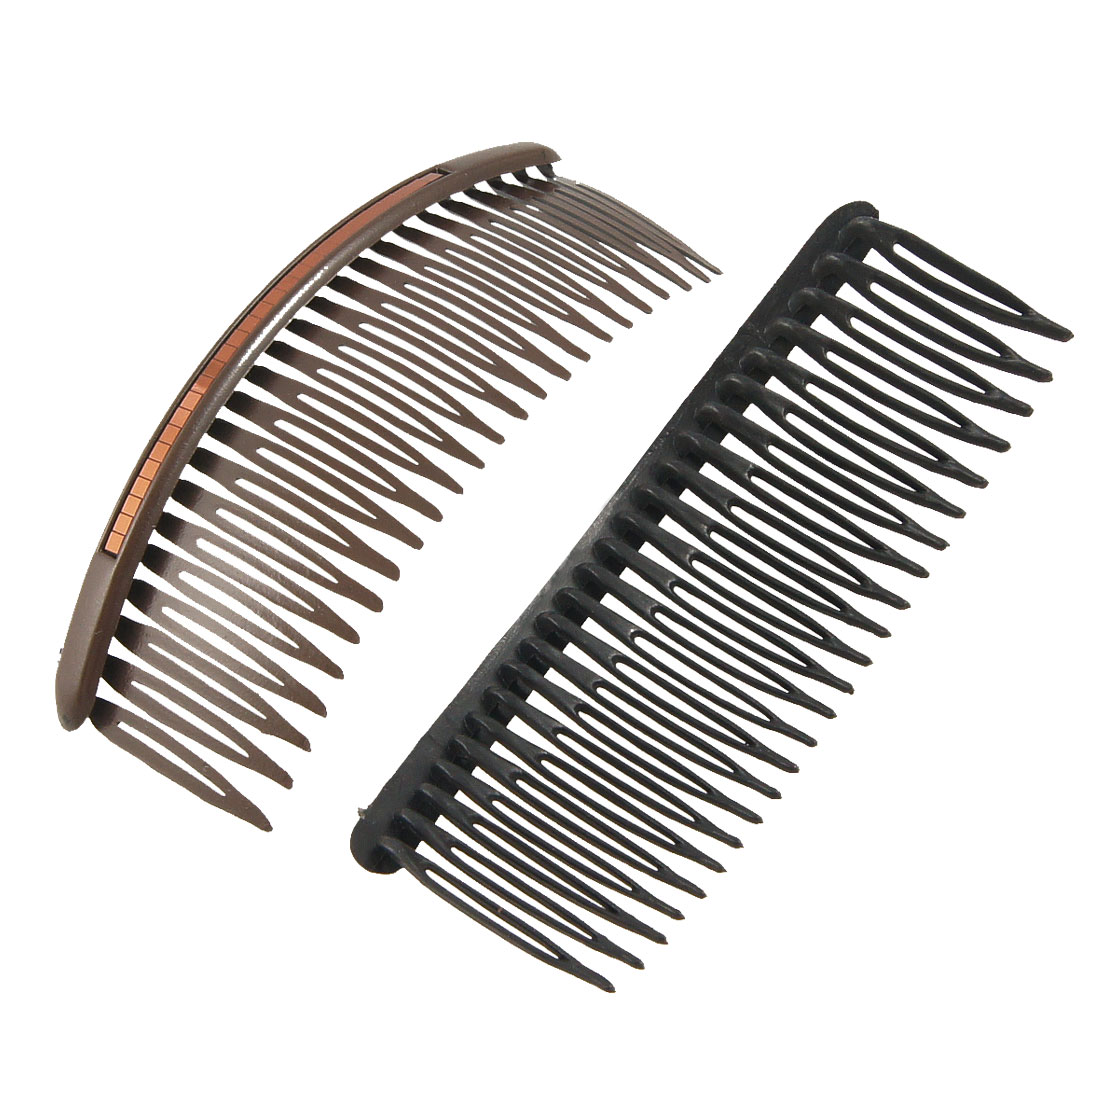 Coffee Color Black Glittery Sheet Inlaid Plastic Comb Hair Pin Clip 2 Pcs